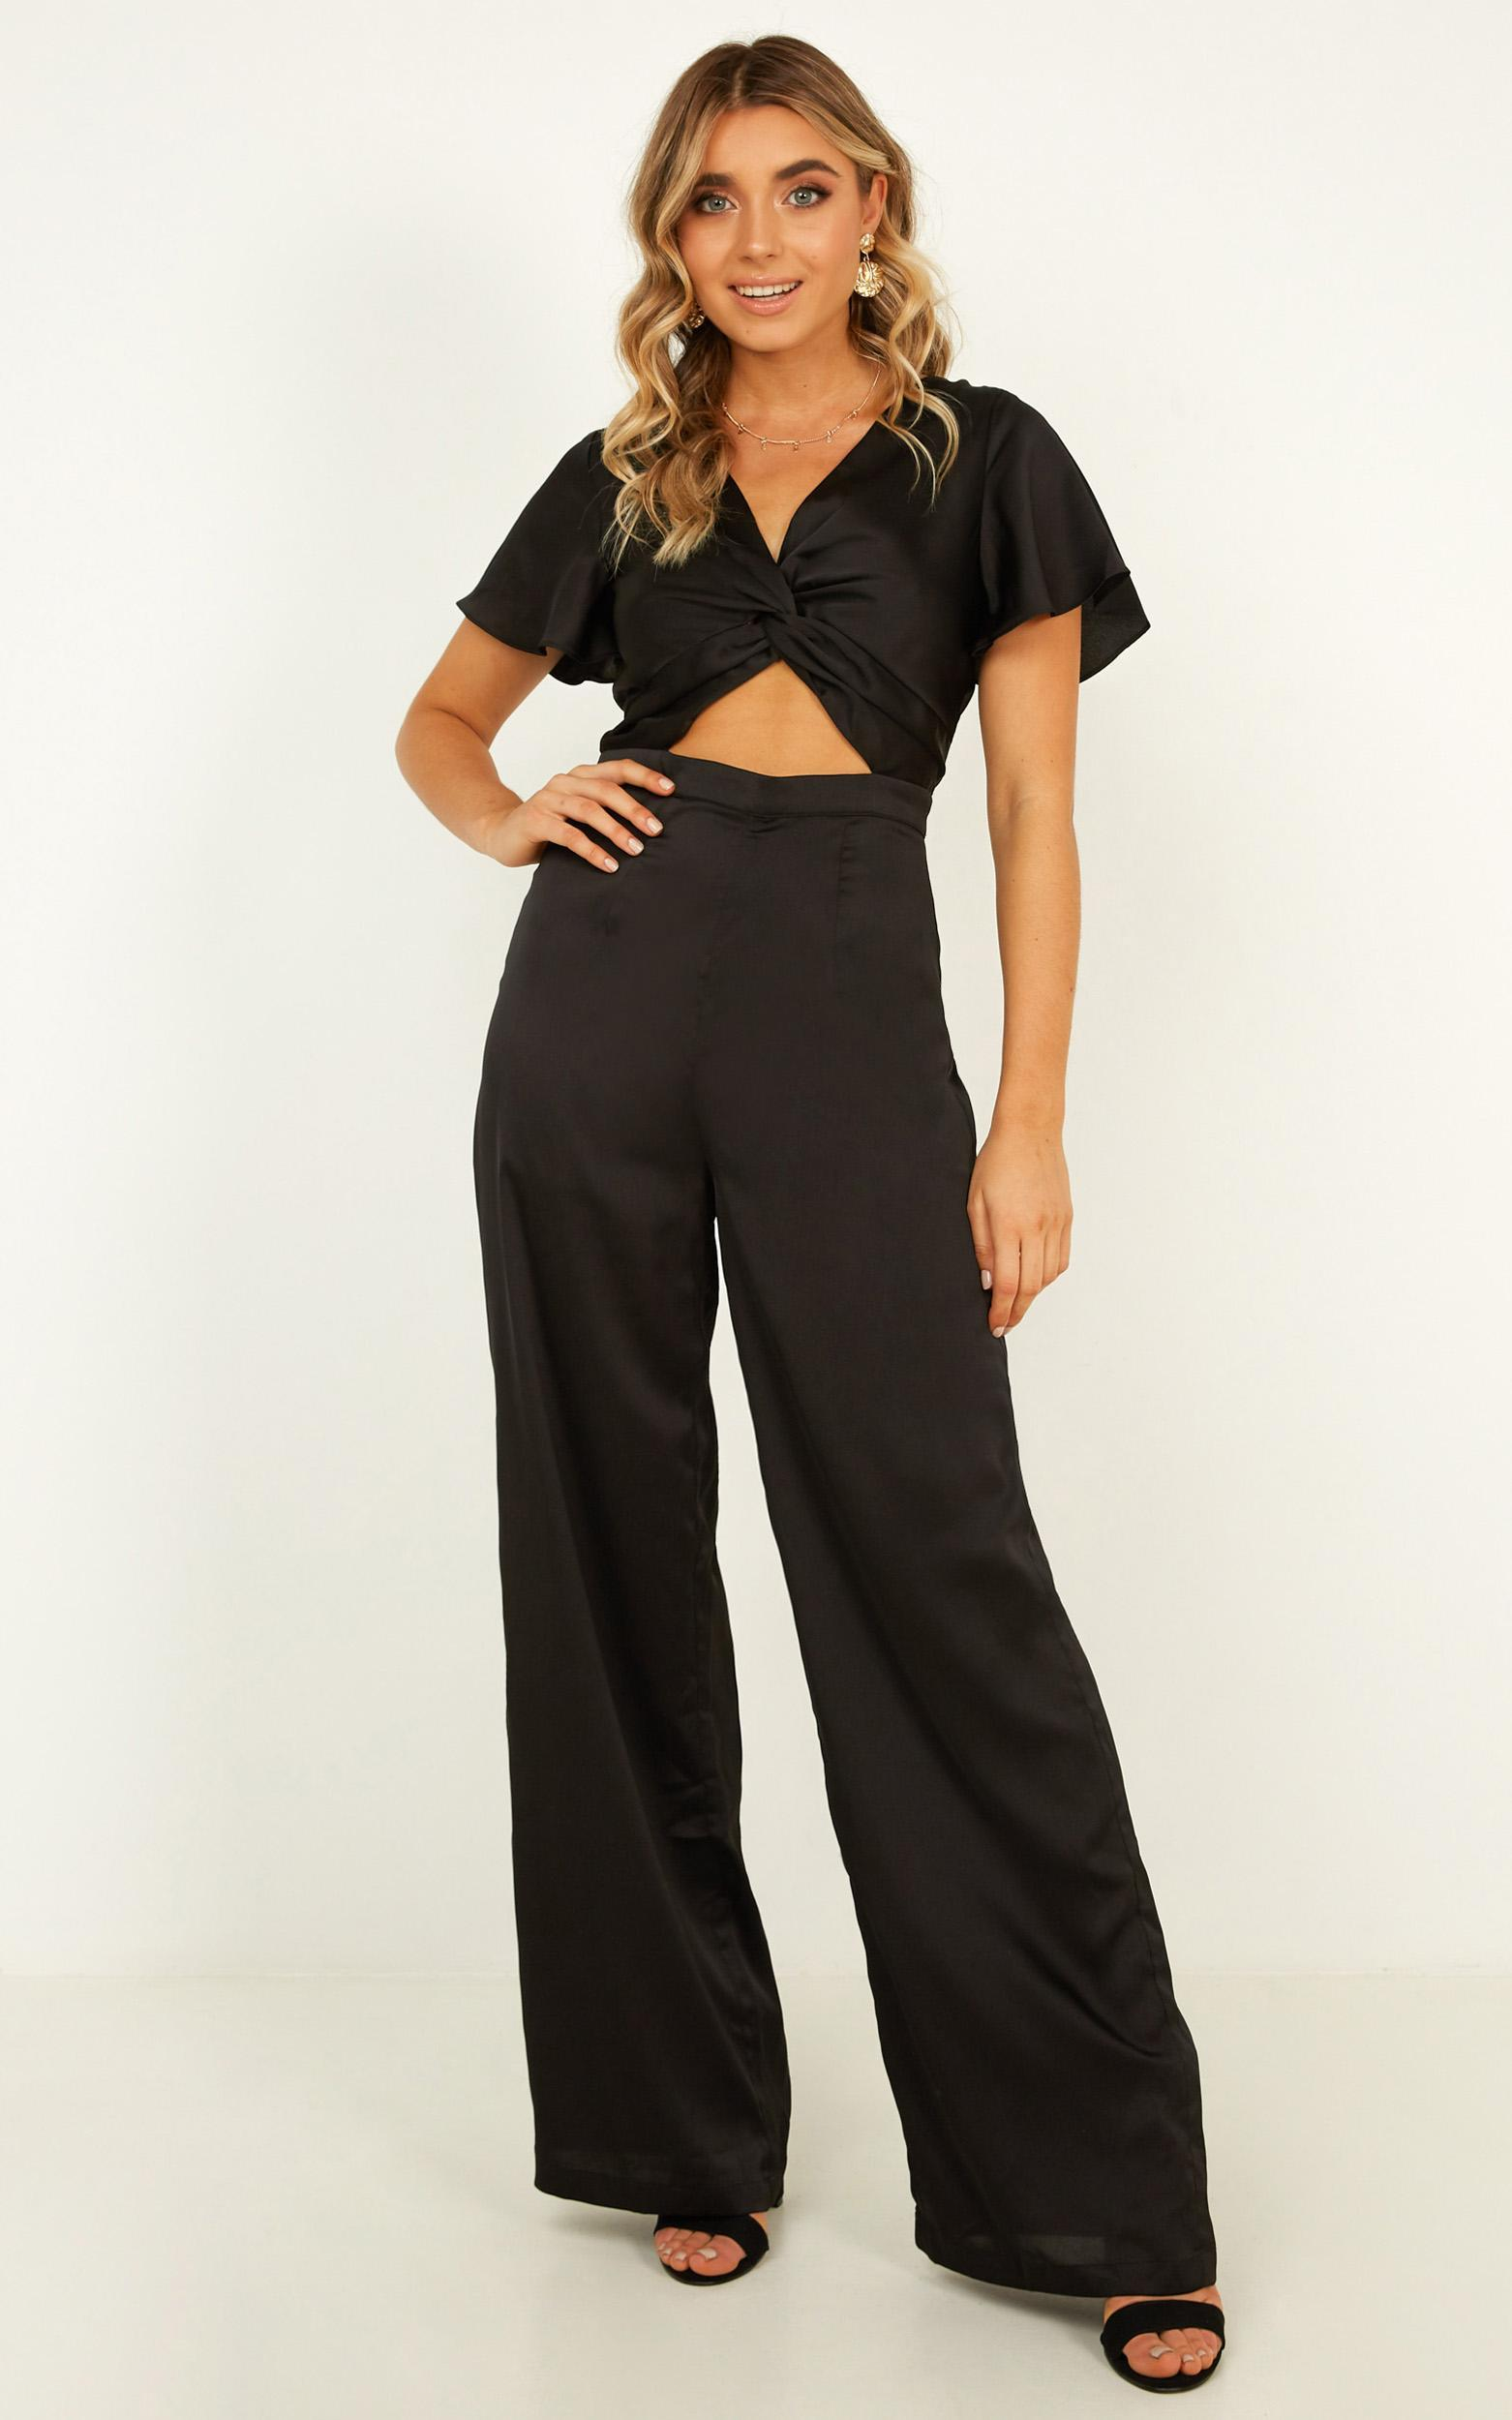 The Way You Are Jumpsuit In black satin - 20 (XXXXL), Black, hi-res image number null